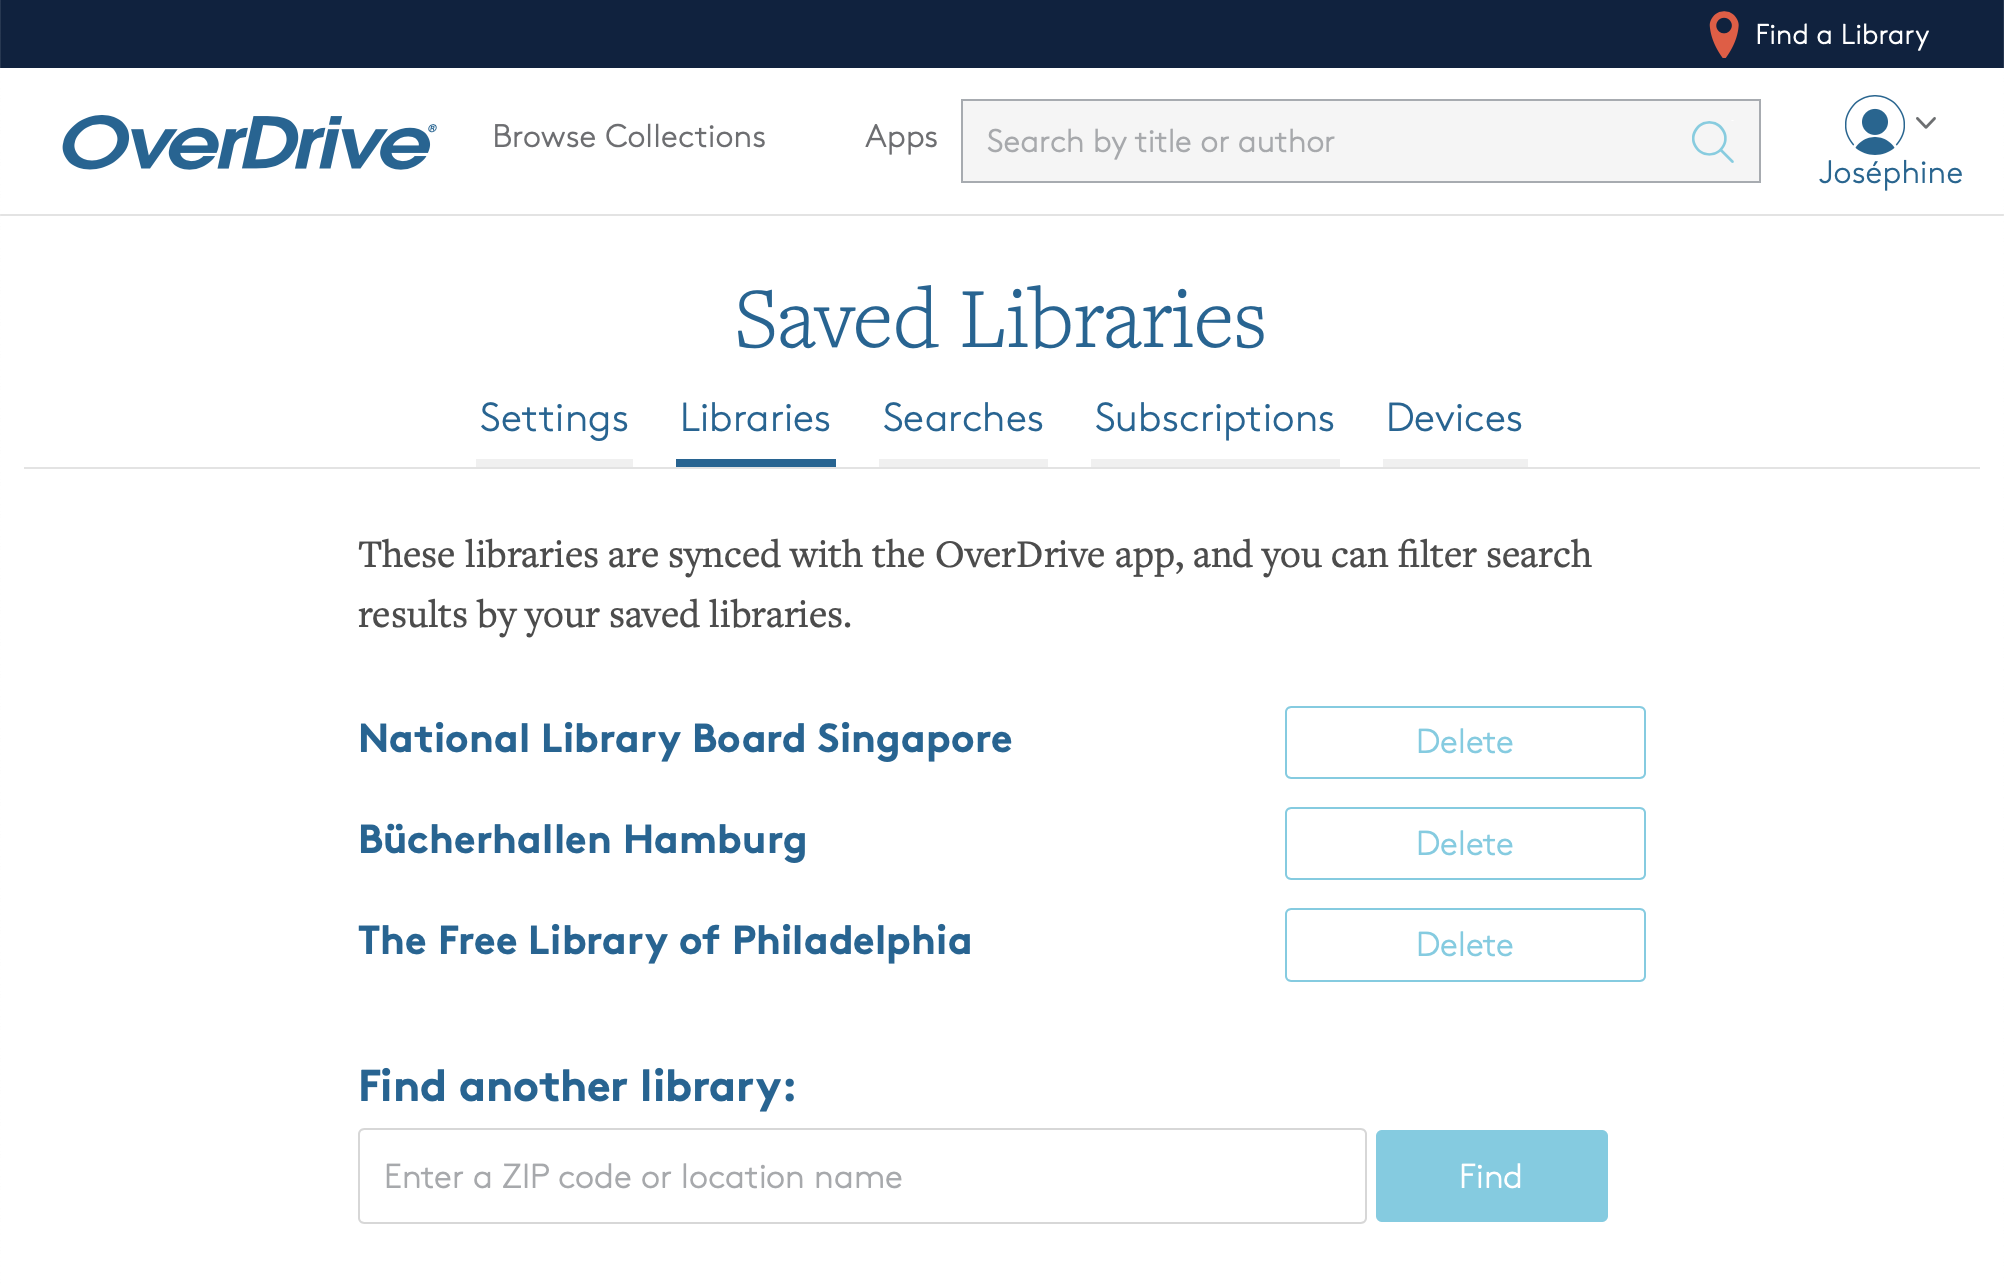 Screenshot of my saved libraries on overdrive.com